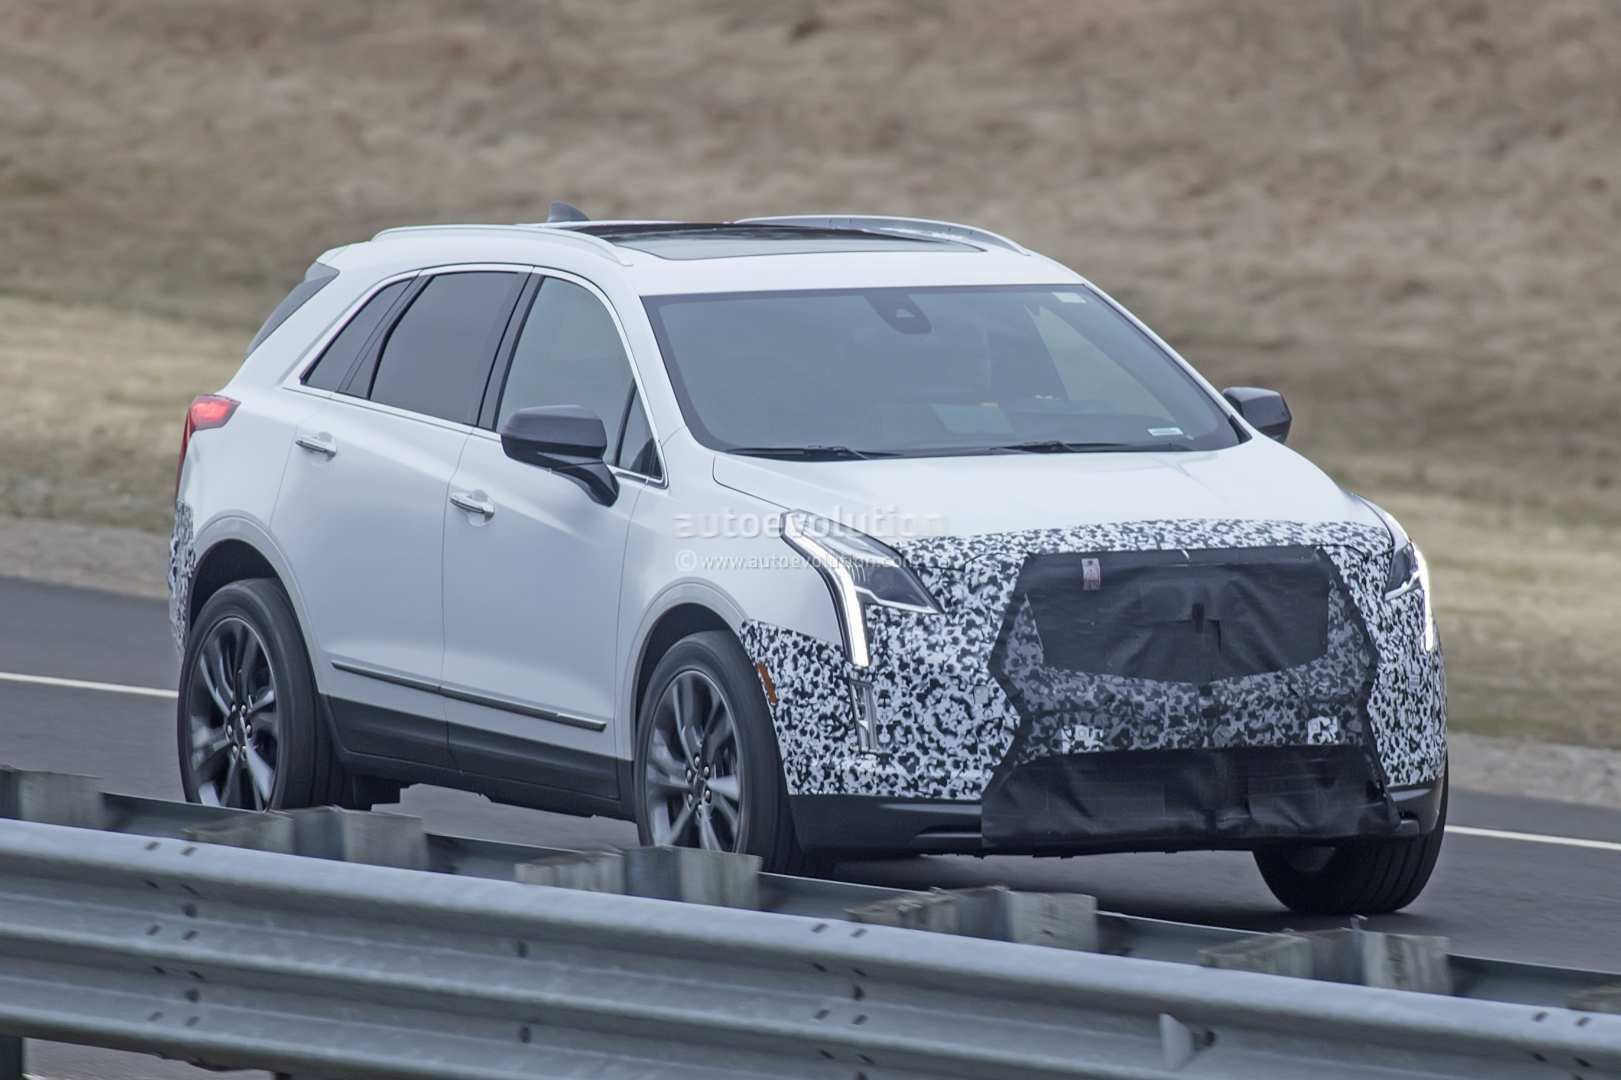 70 New Spy Shots Cadillac Xt5 Redesign and Concept with Spy Shots Cadillac Xt5